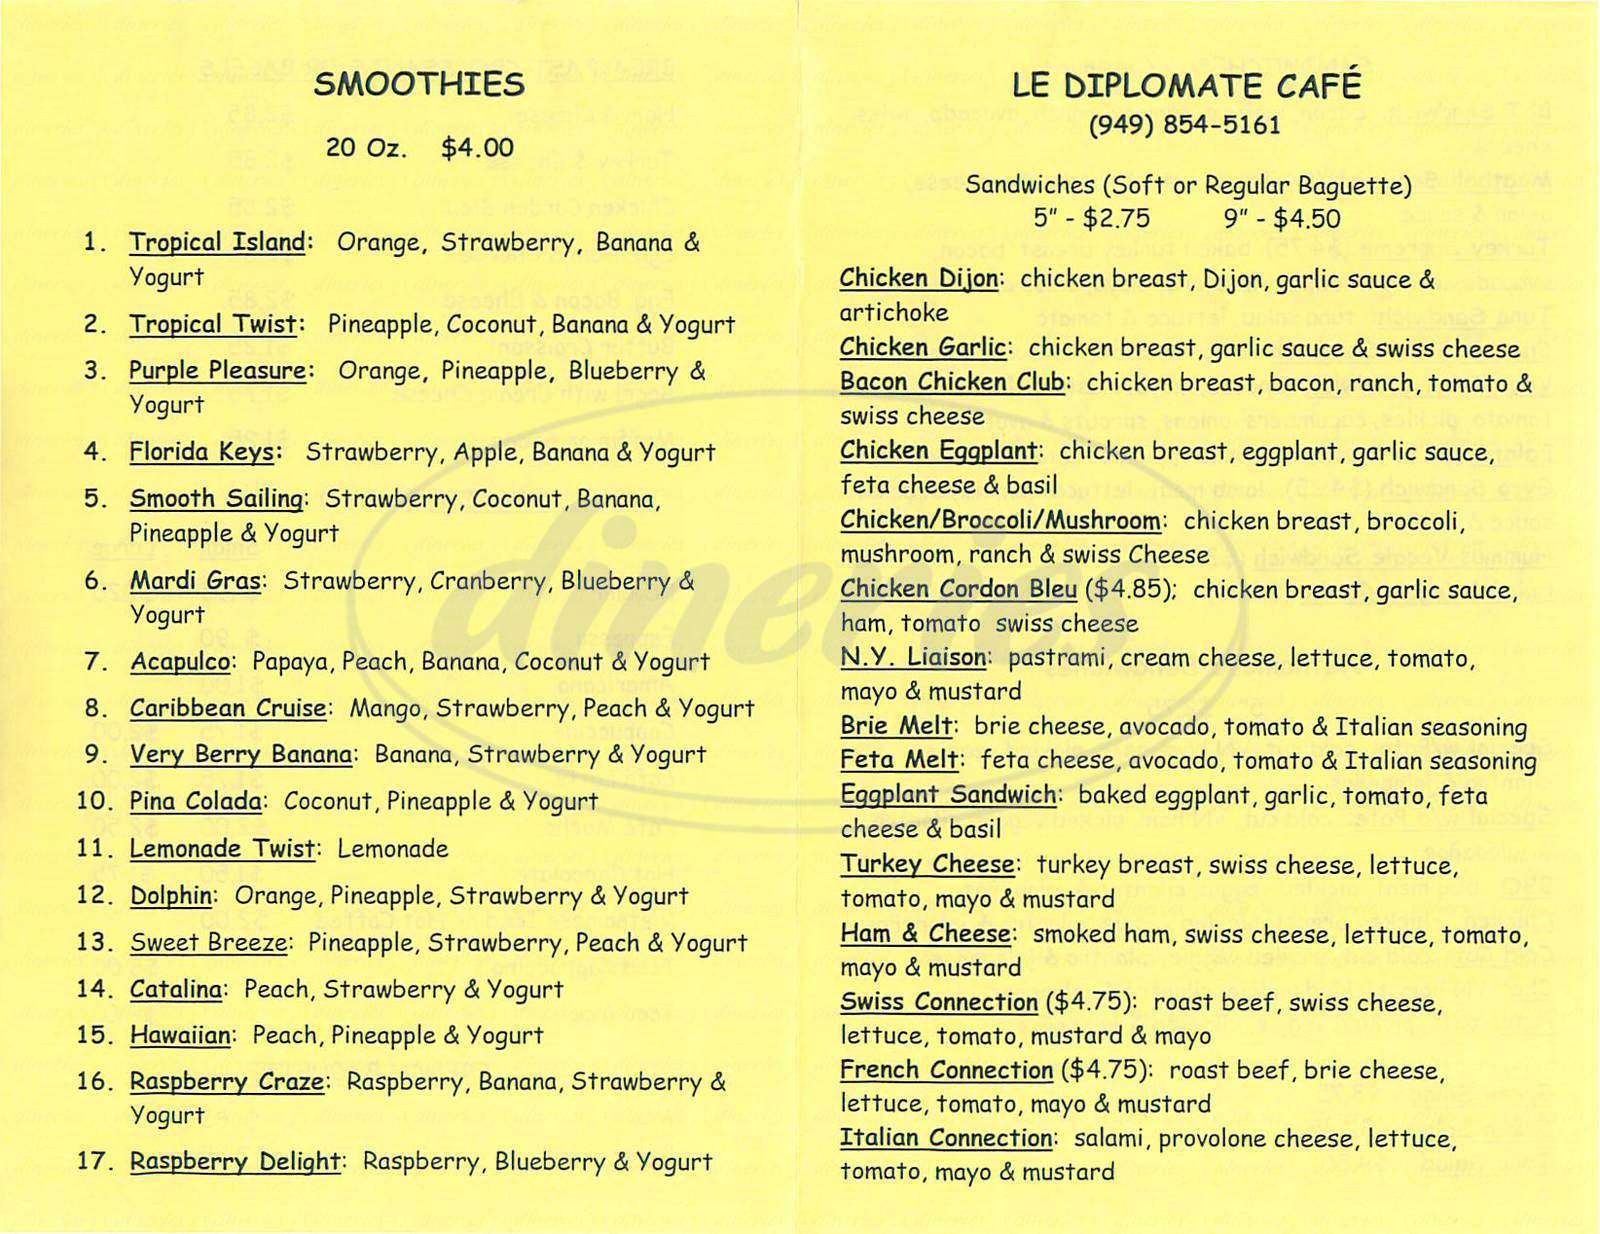 menu for Le Diplomate Cafe